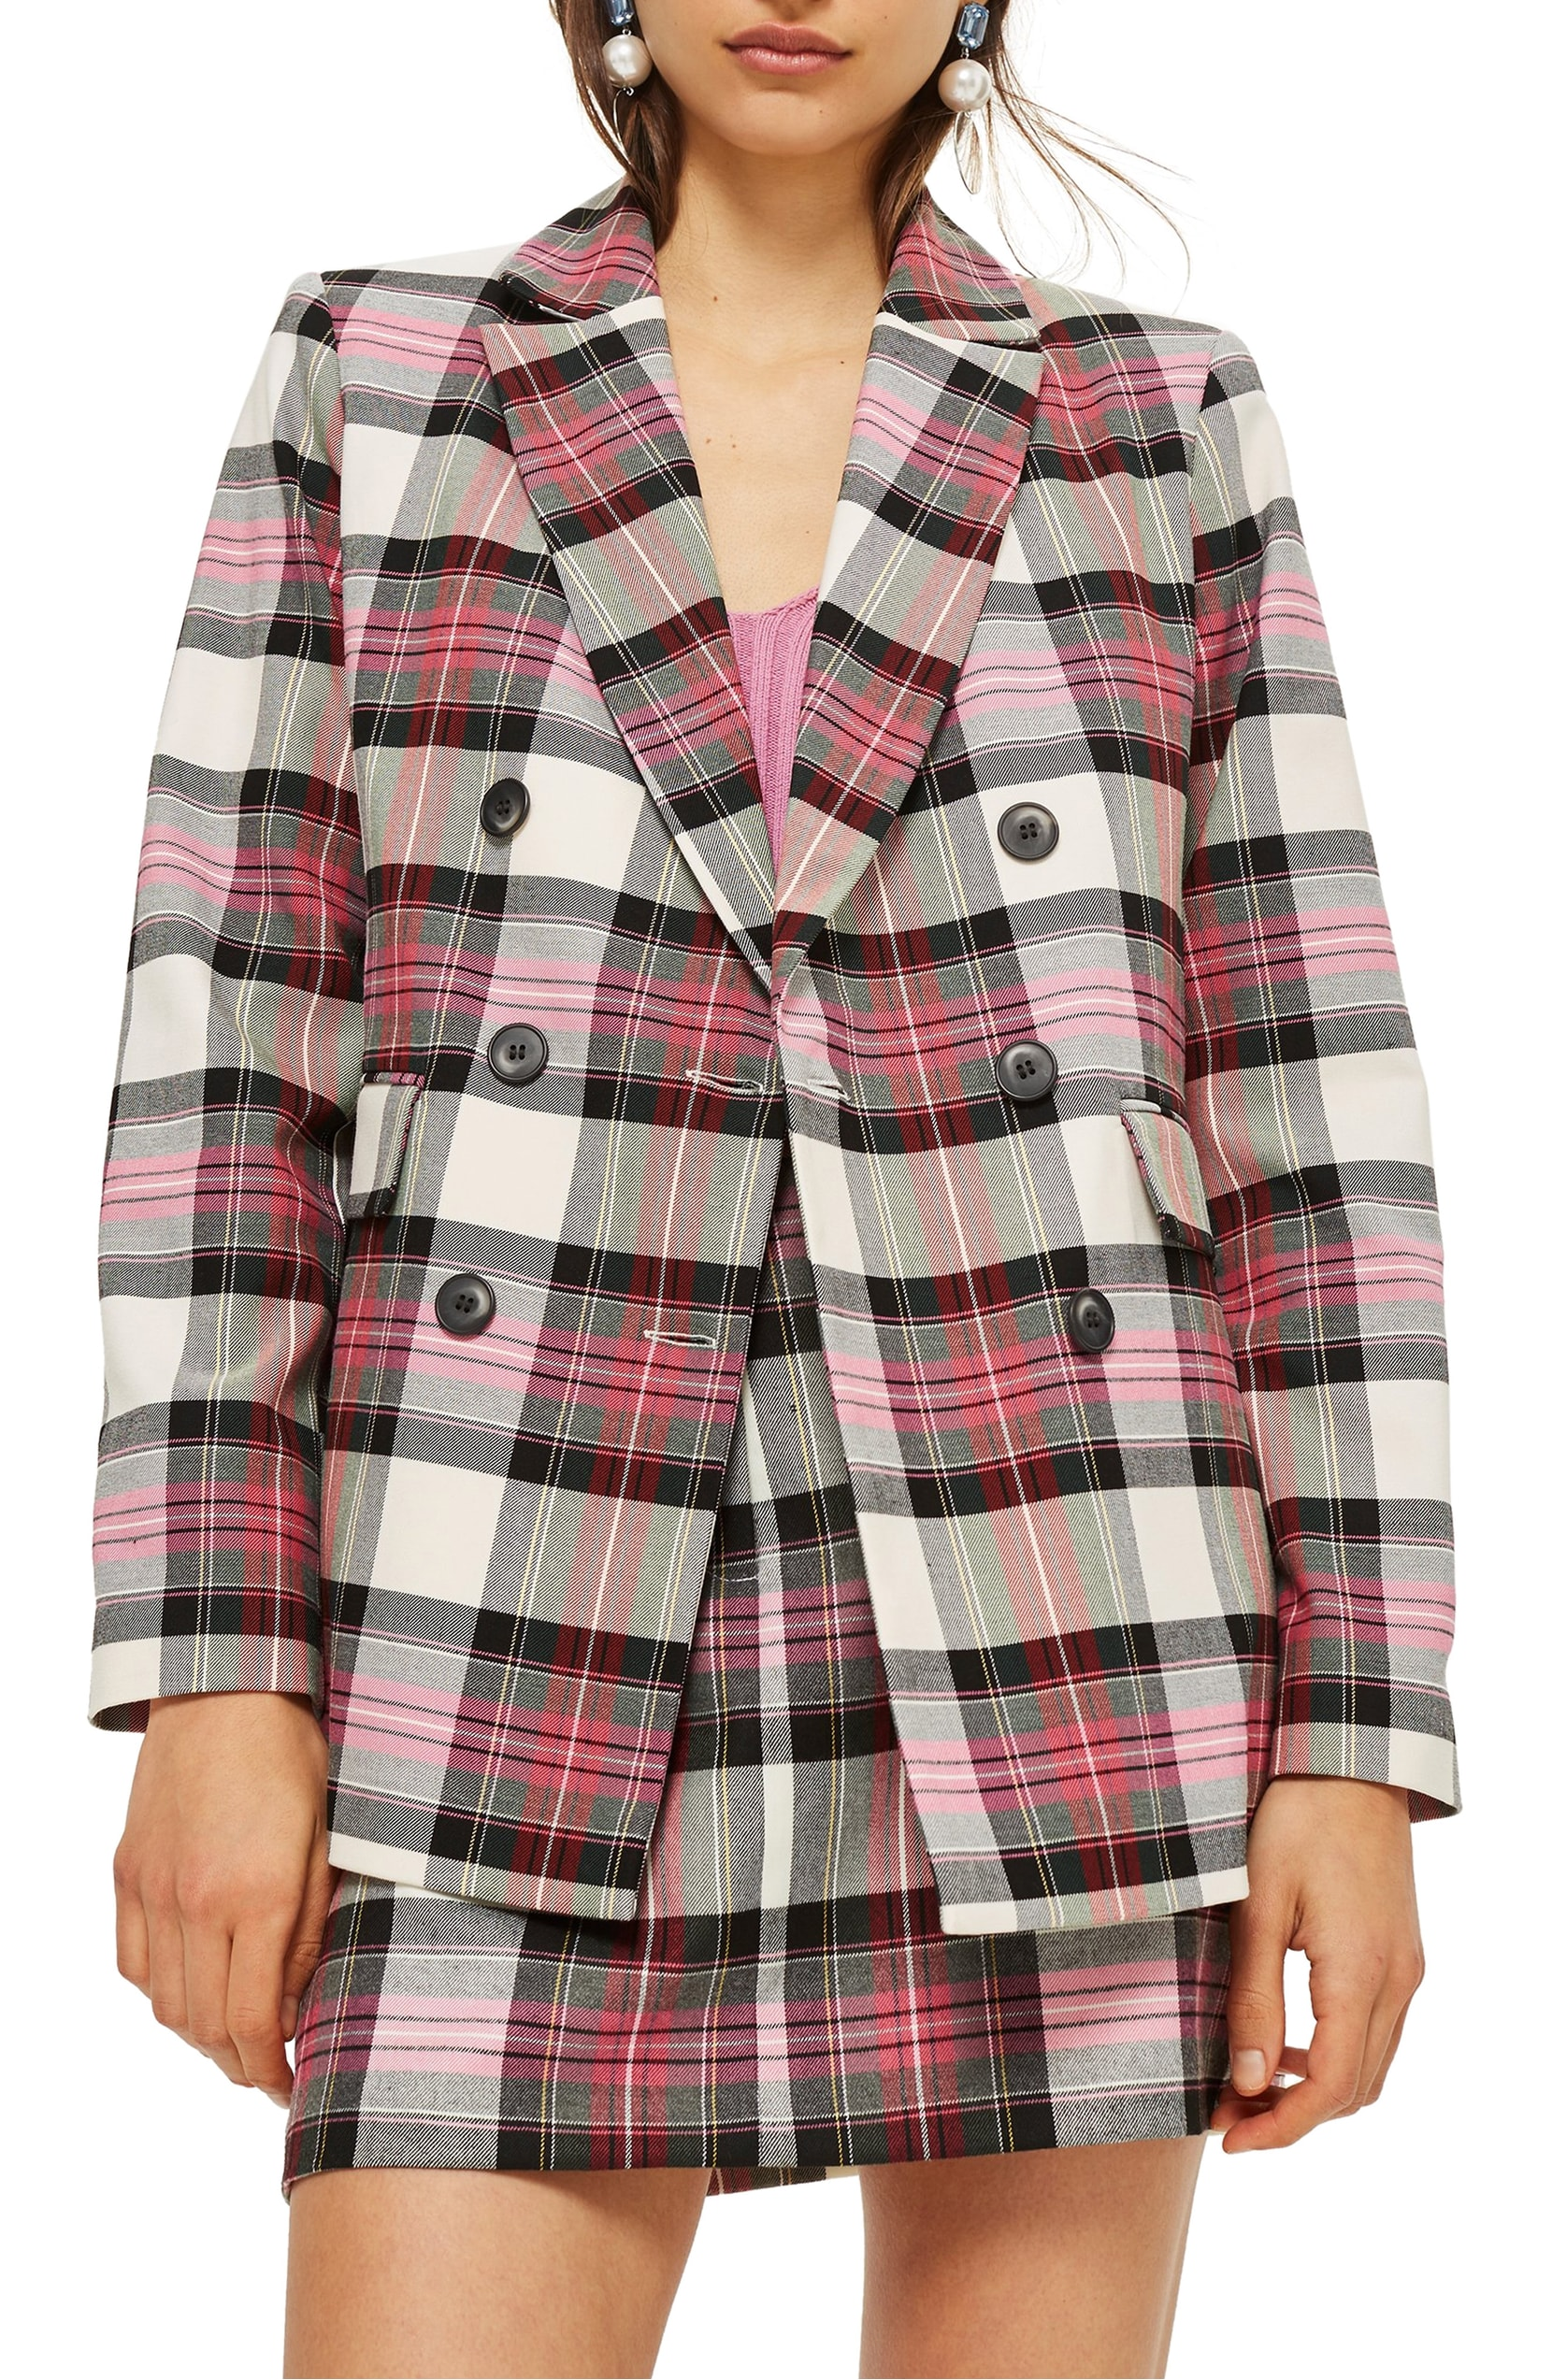 The Trend: Plaid. All prepped up for the coming season, this double-breasted tartan jacket is a bit over-sized and loaded with styling options. TOPSHOP - $110.00. (Image: Nordstrom){ }